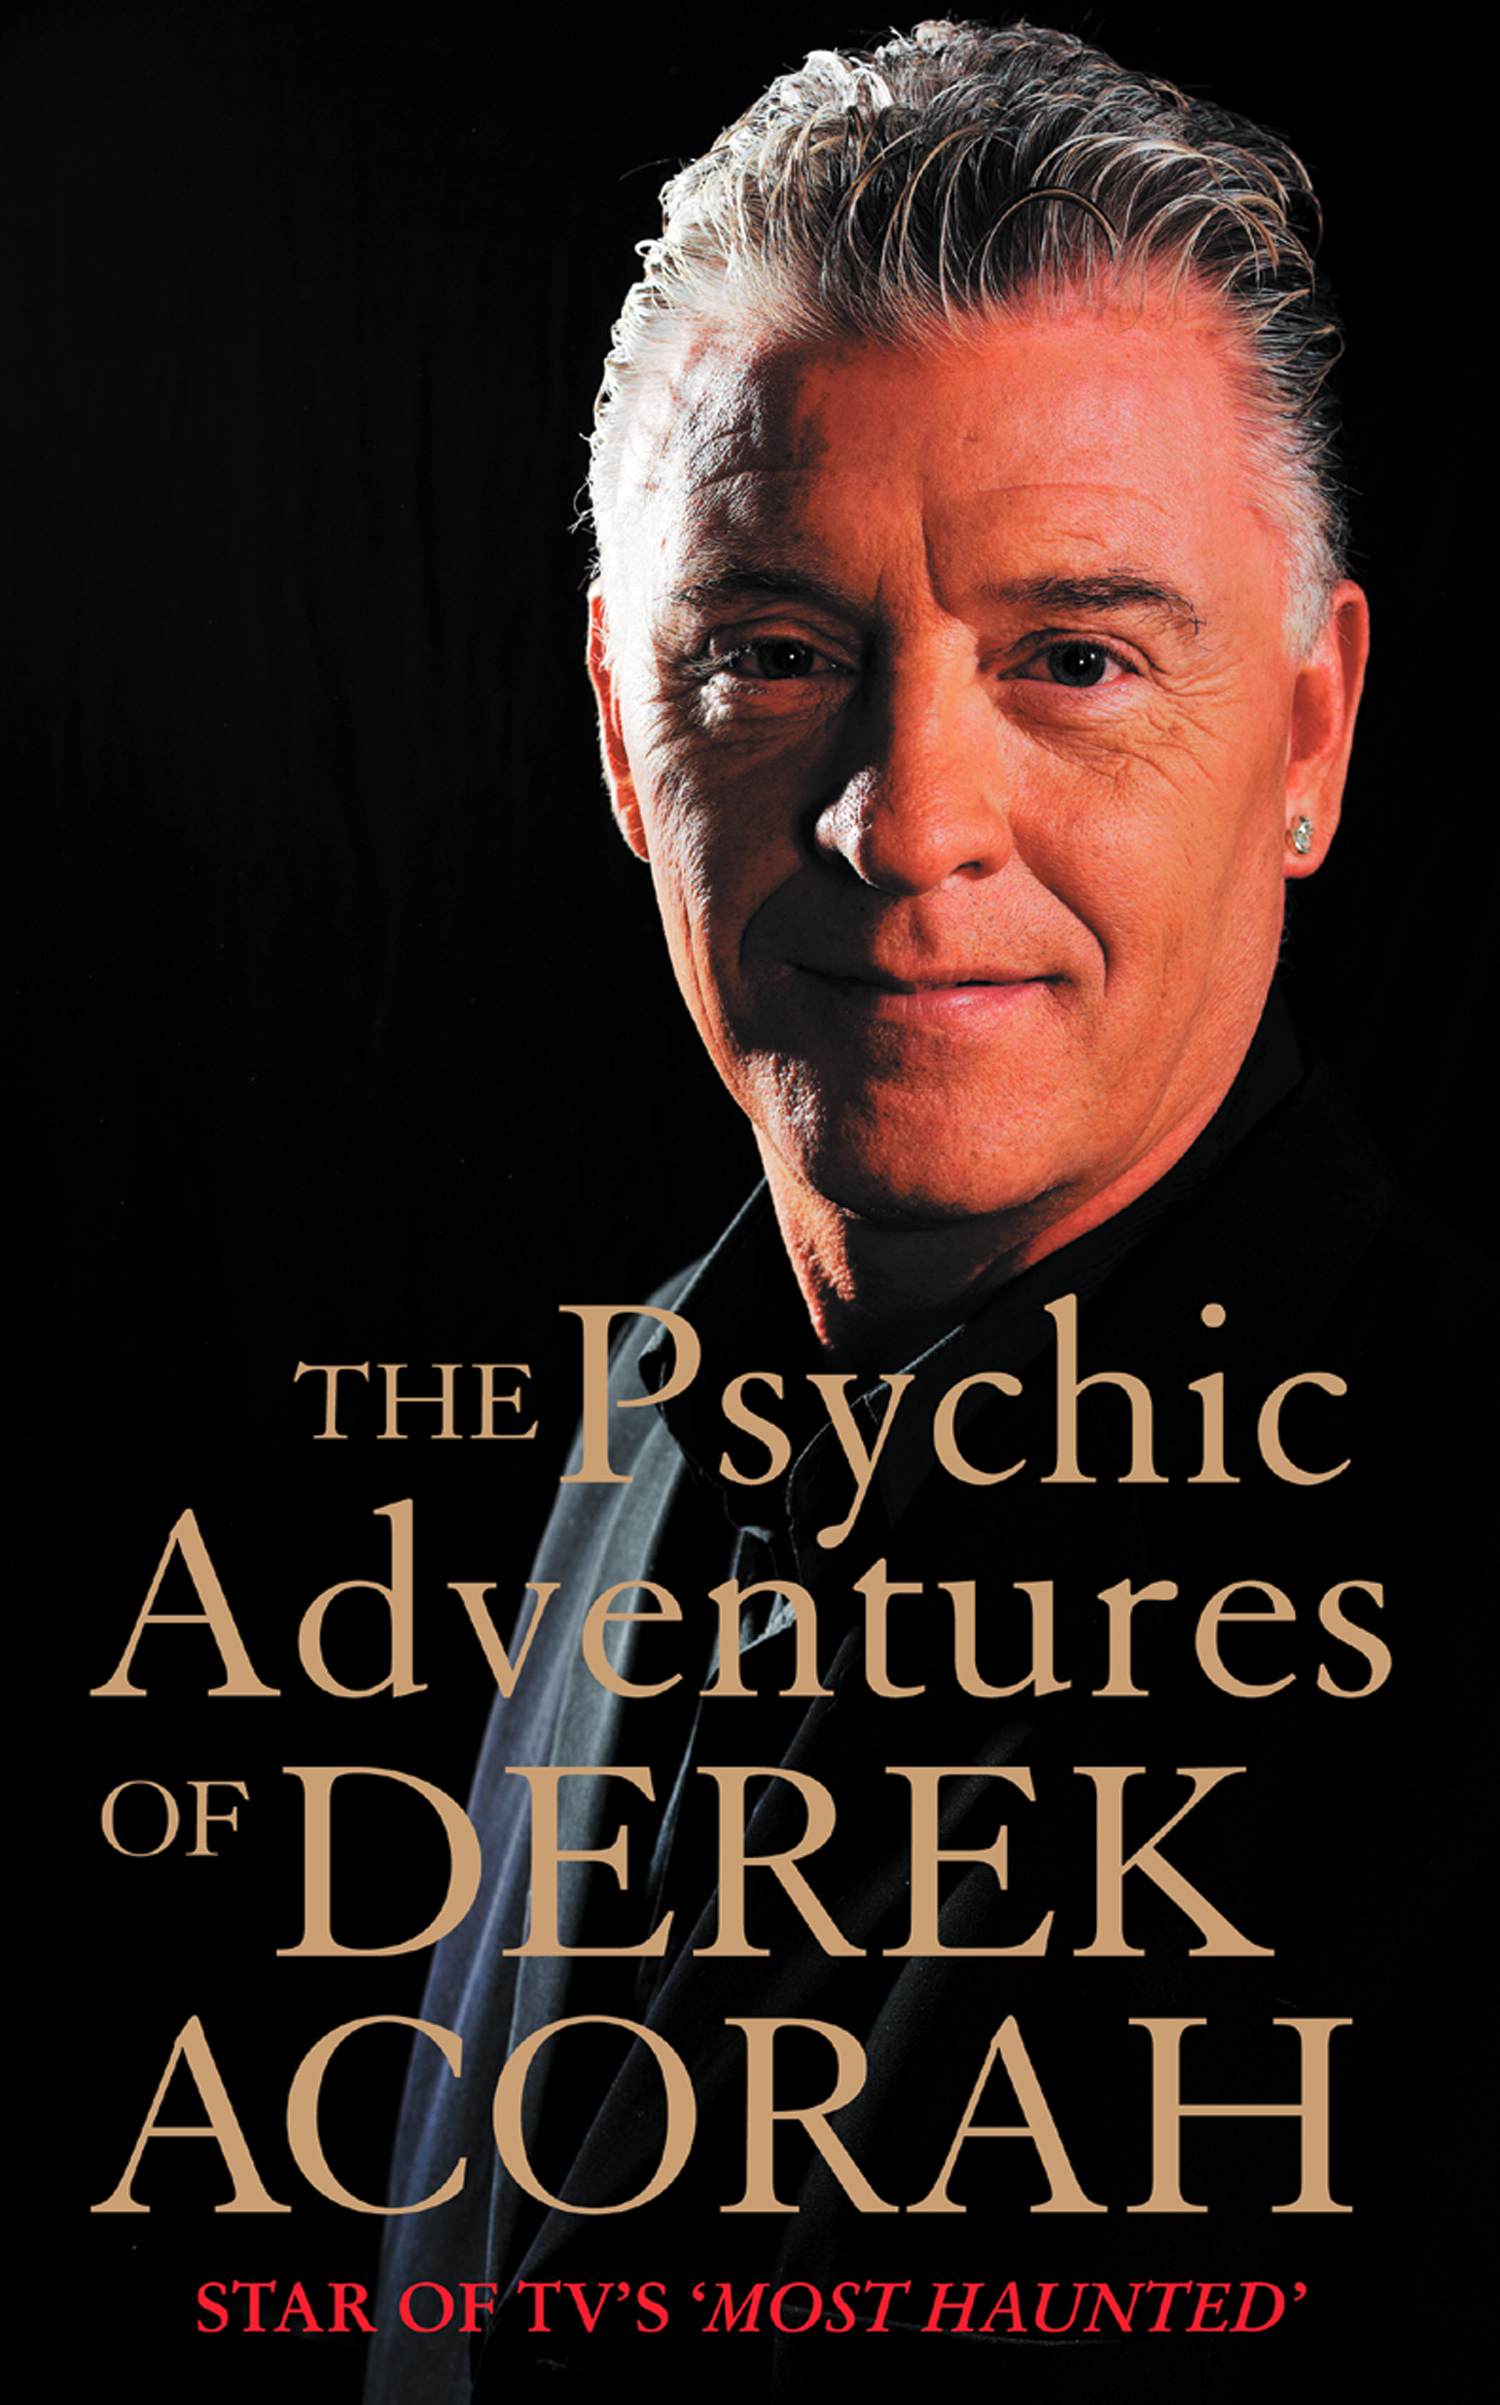 The Psychic Adventures of Derek Acorah: Star of TV?s Most Haunted